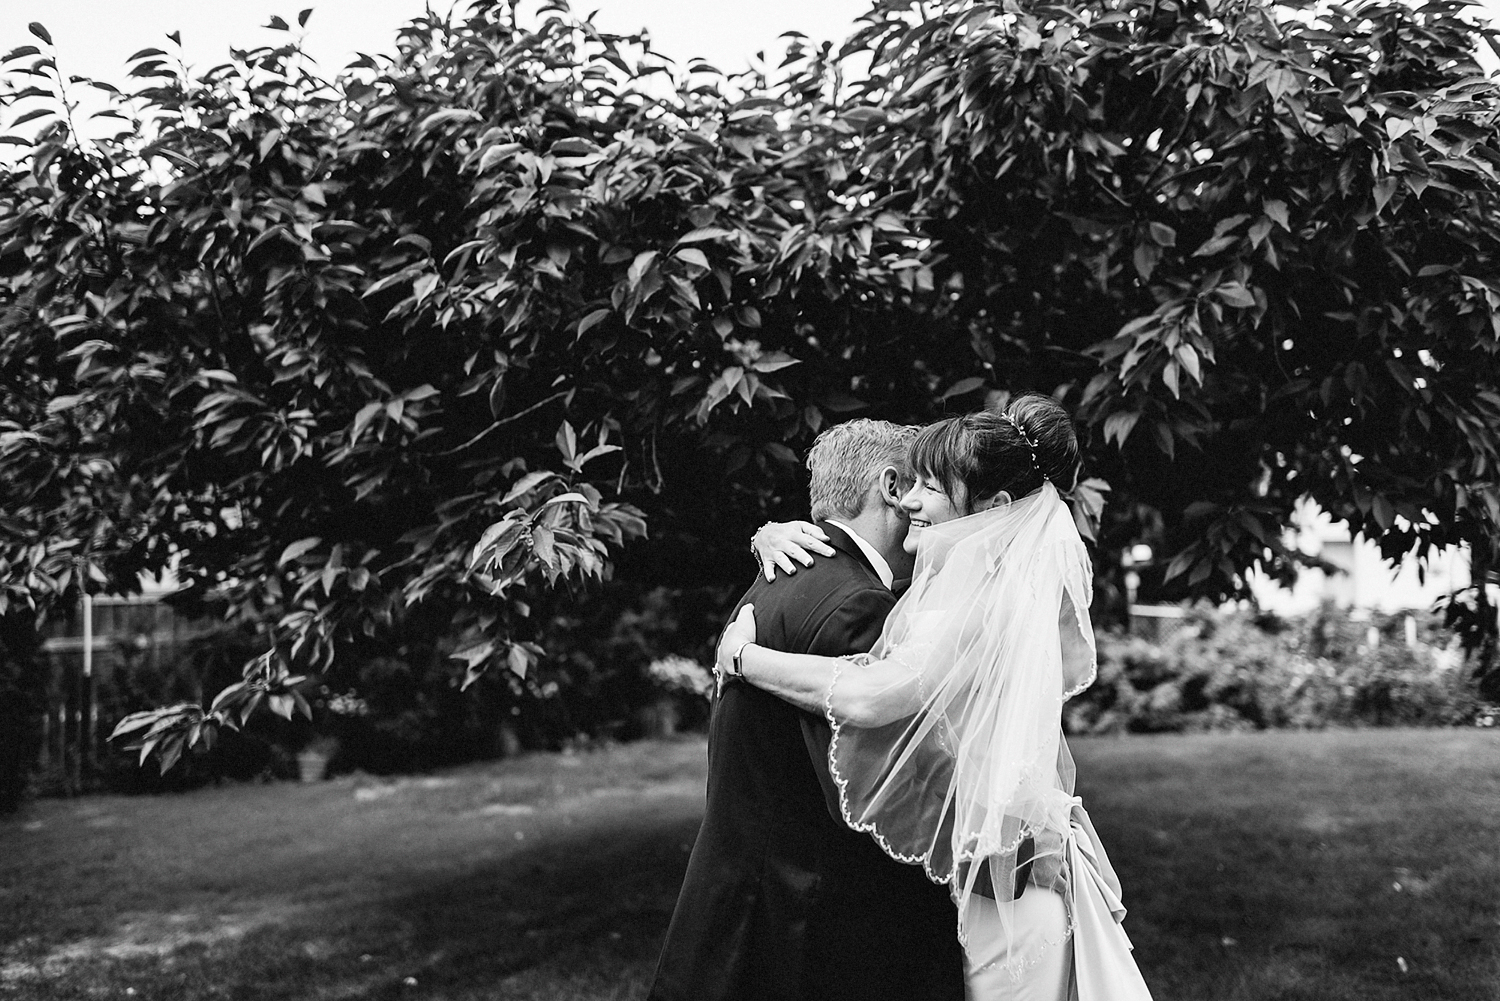 Best-Moody-Documentary-Wedding-Photographers-in-Toronto-Canada-Vintage-Photojournalistic-Wedding-photography-Epic-Moody-Cinematic-First-Look-in-Brides-Parents-backyard-kissing-BW.jpg